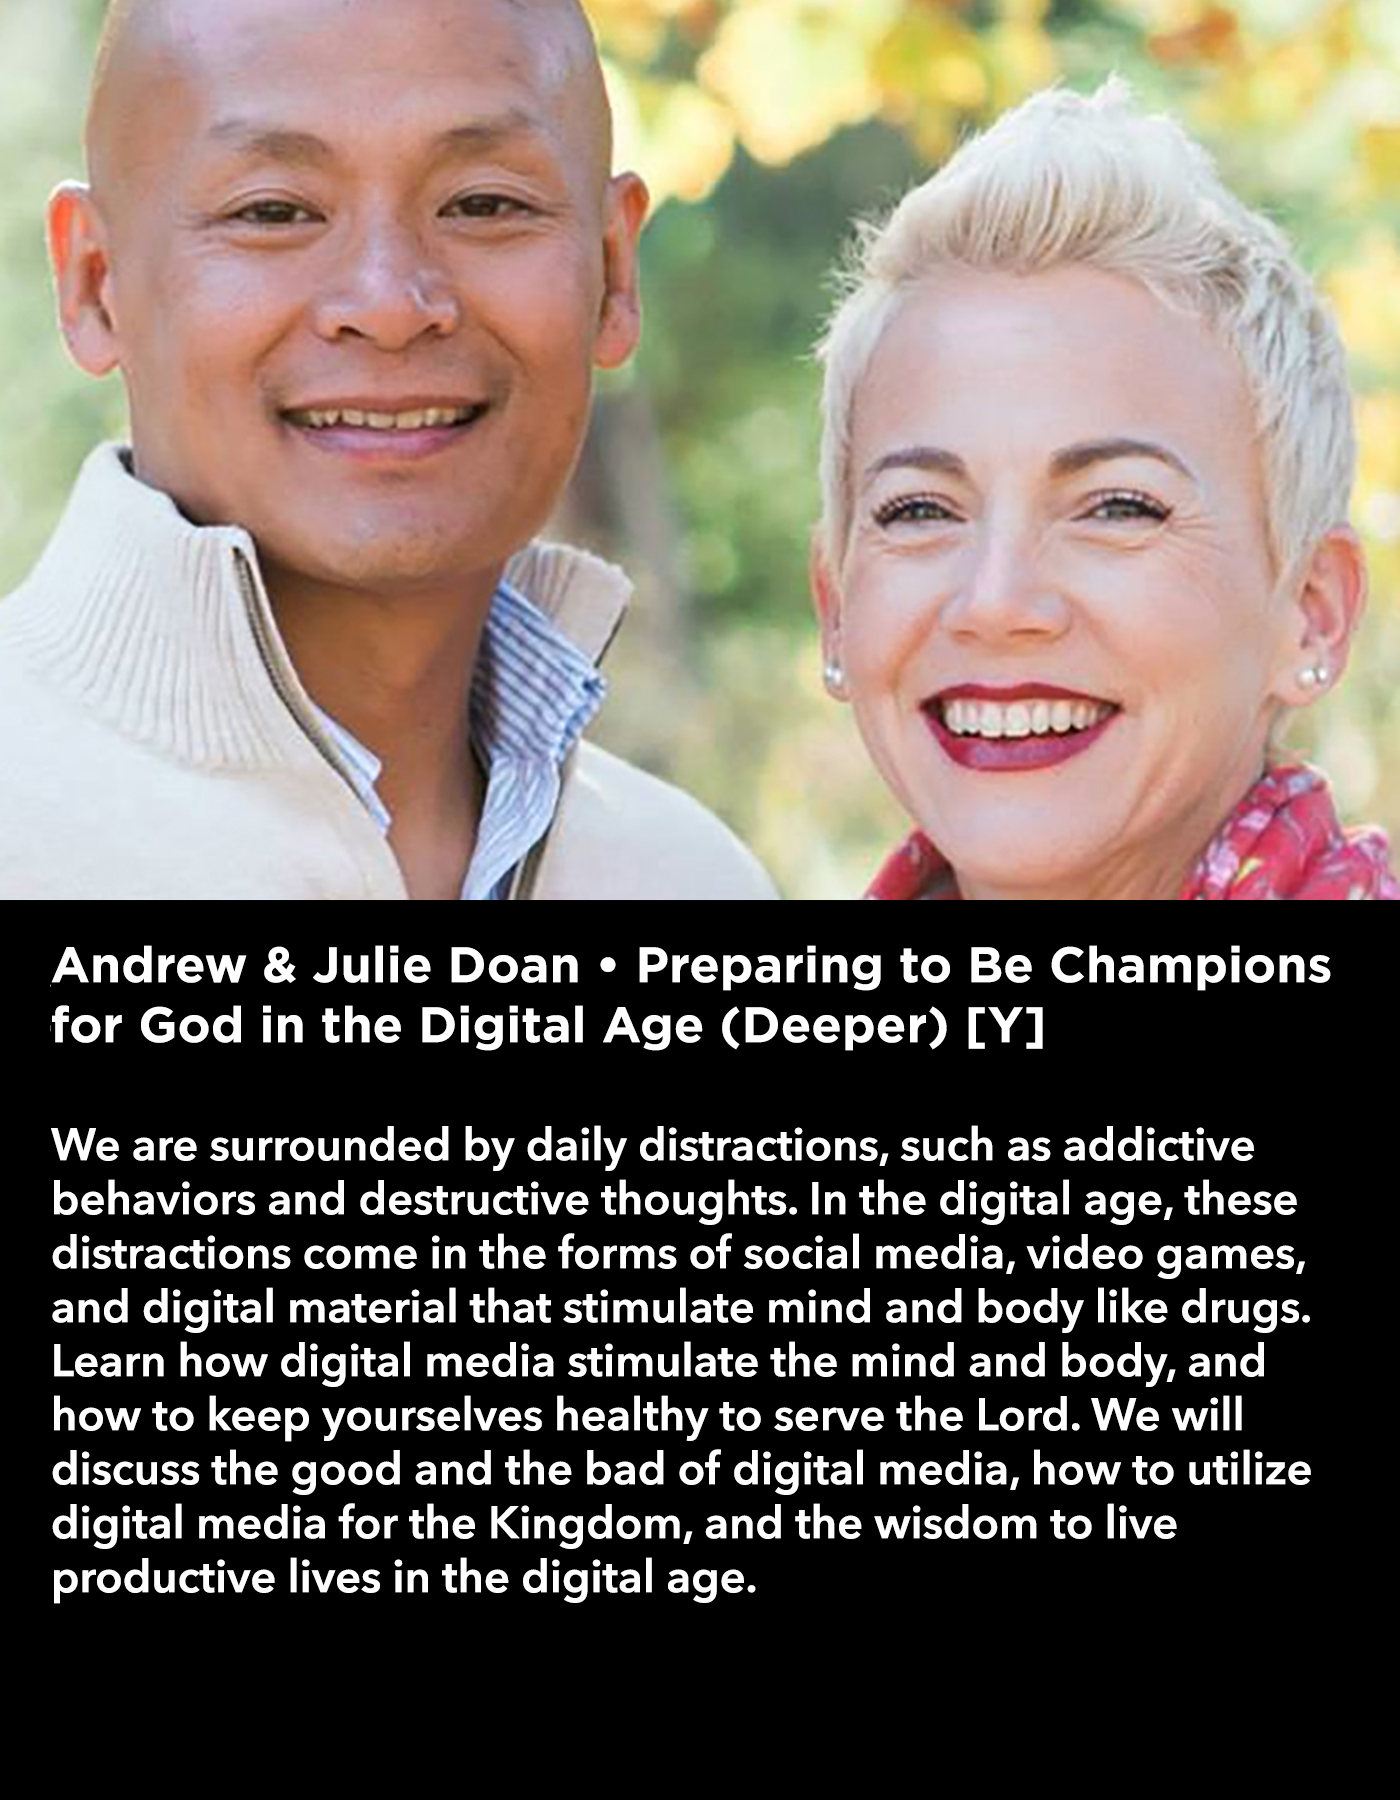 Andrew & Julie Doan • Preparing to Be Champions for God in the Digital Age (Deeper) [Y] •Saturday Morning, March 18 • 10:30 – 11:45 am